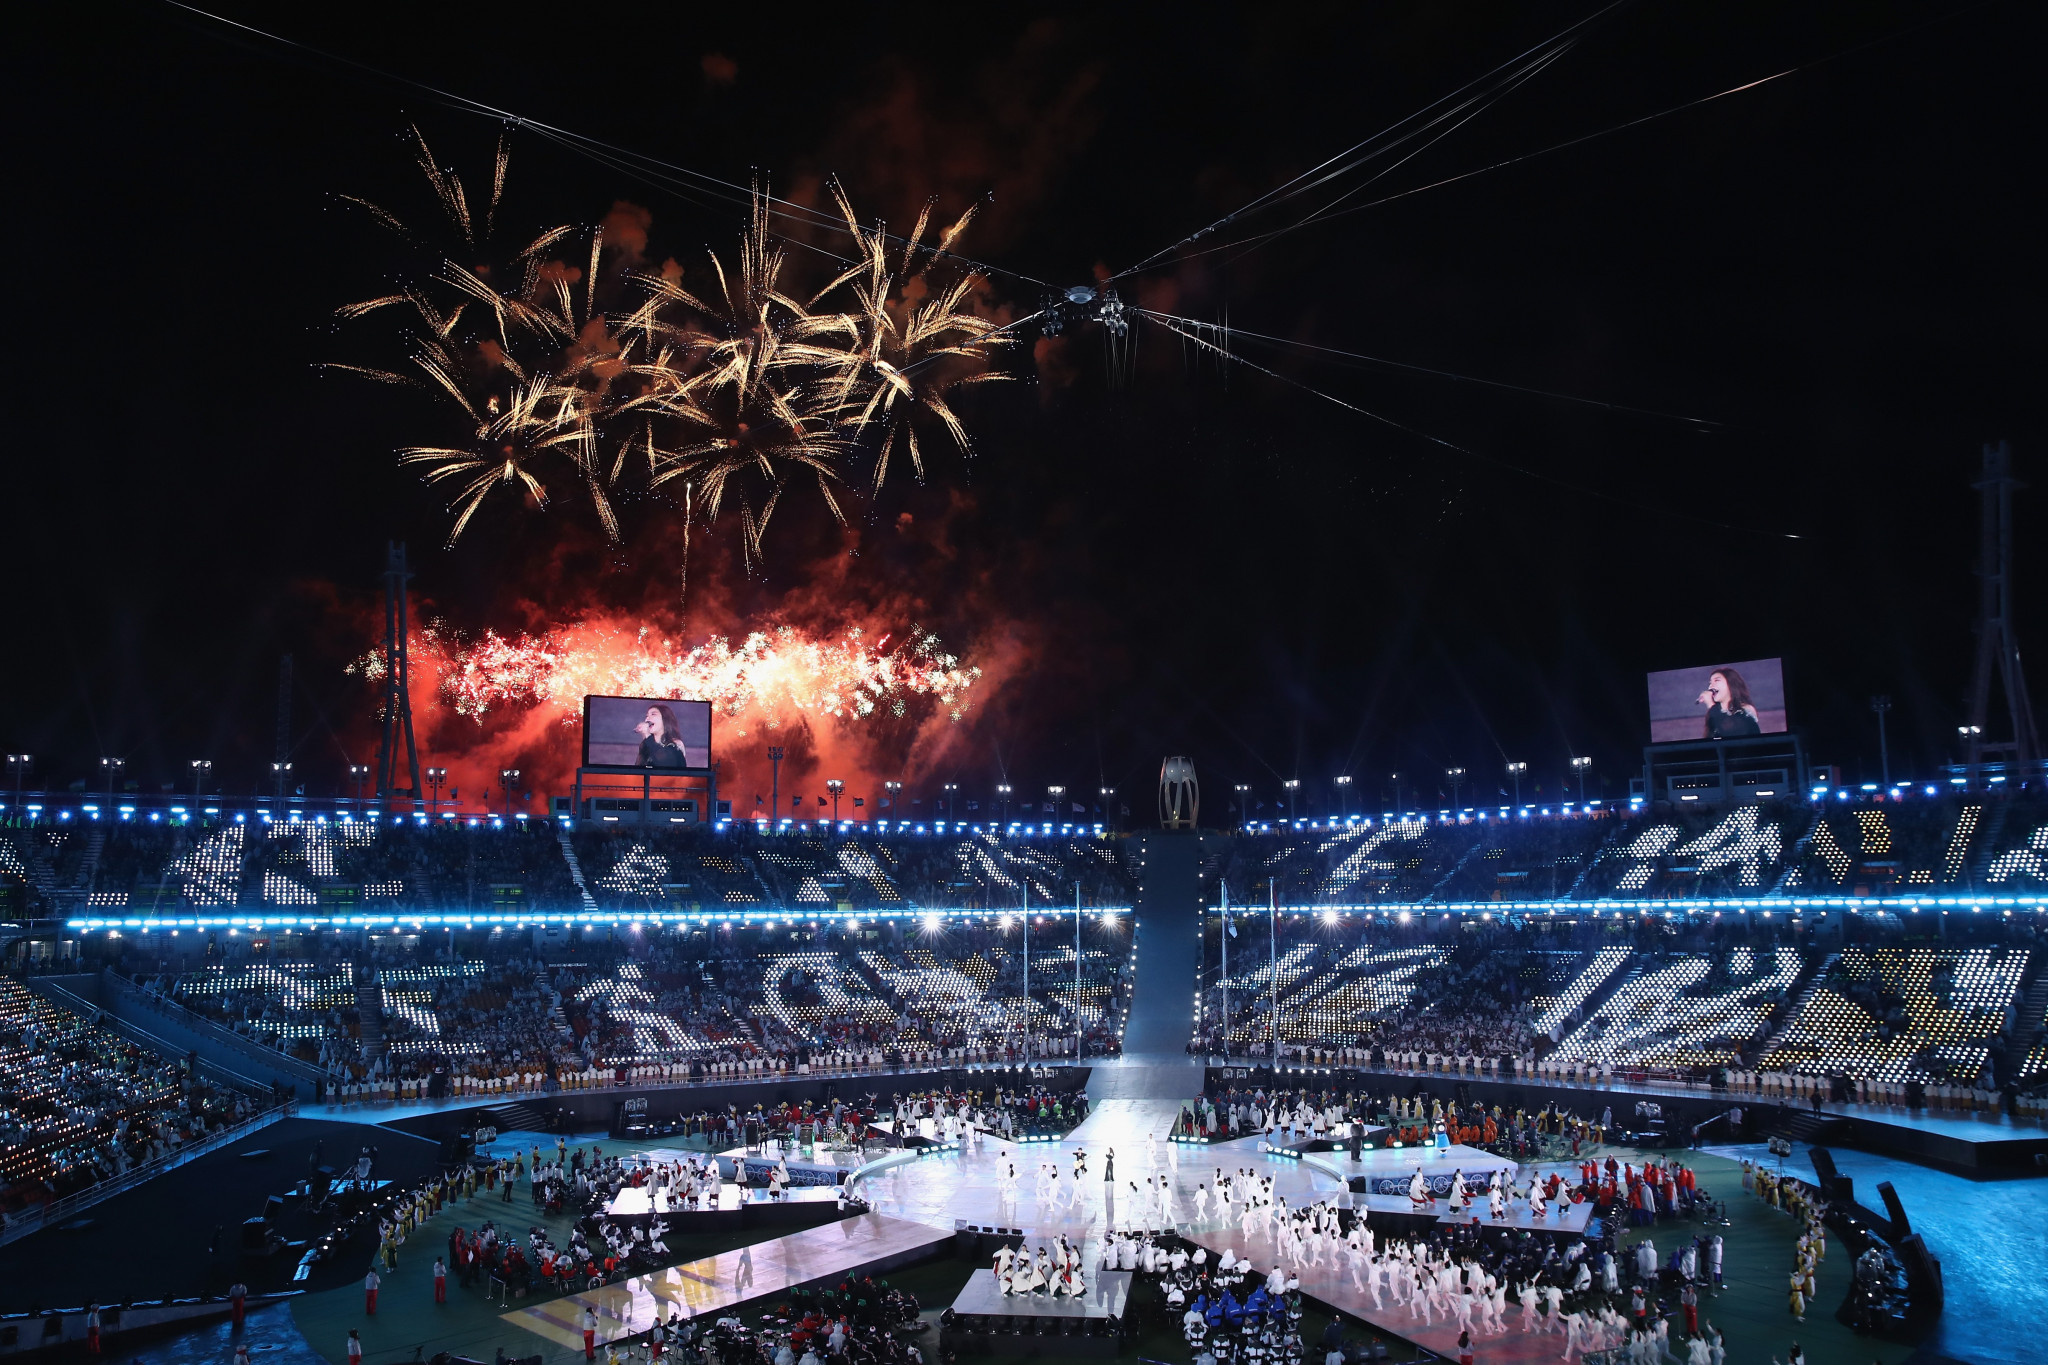 Curtain comes down on Pyeongchang 2018 Winter Paralympic Games